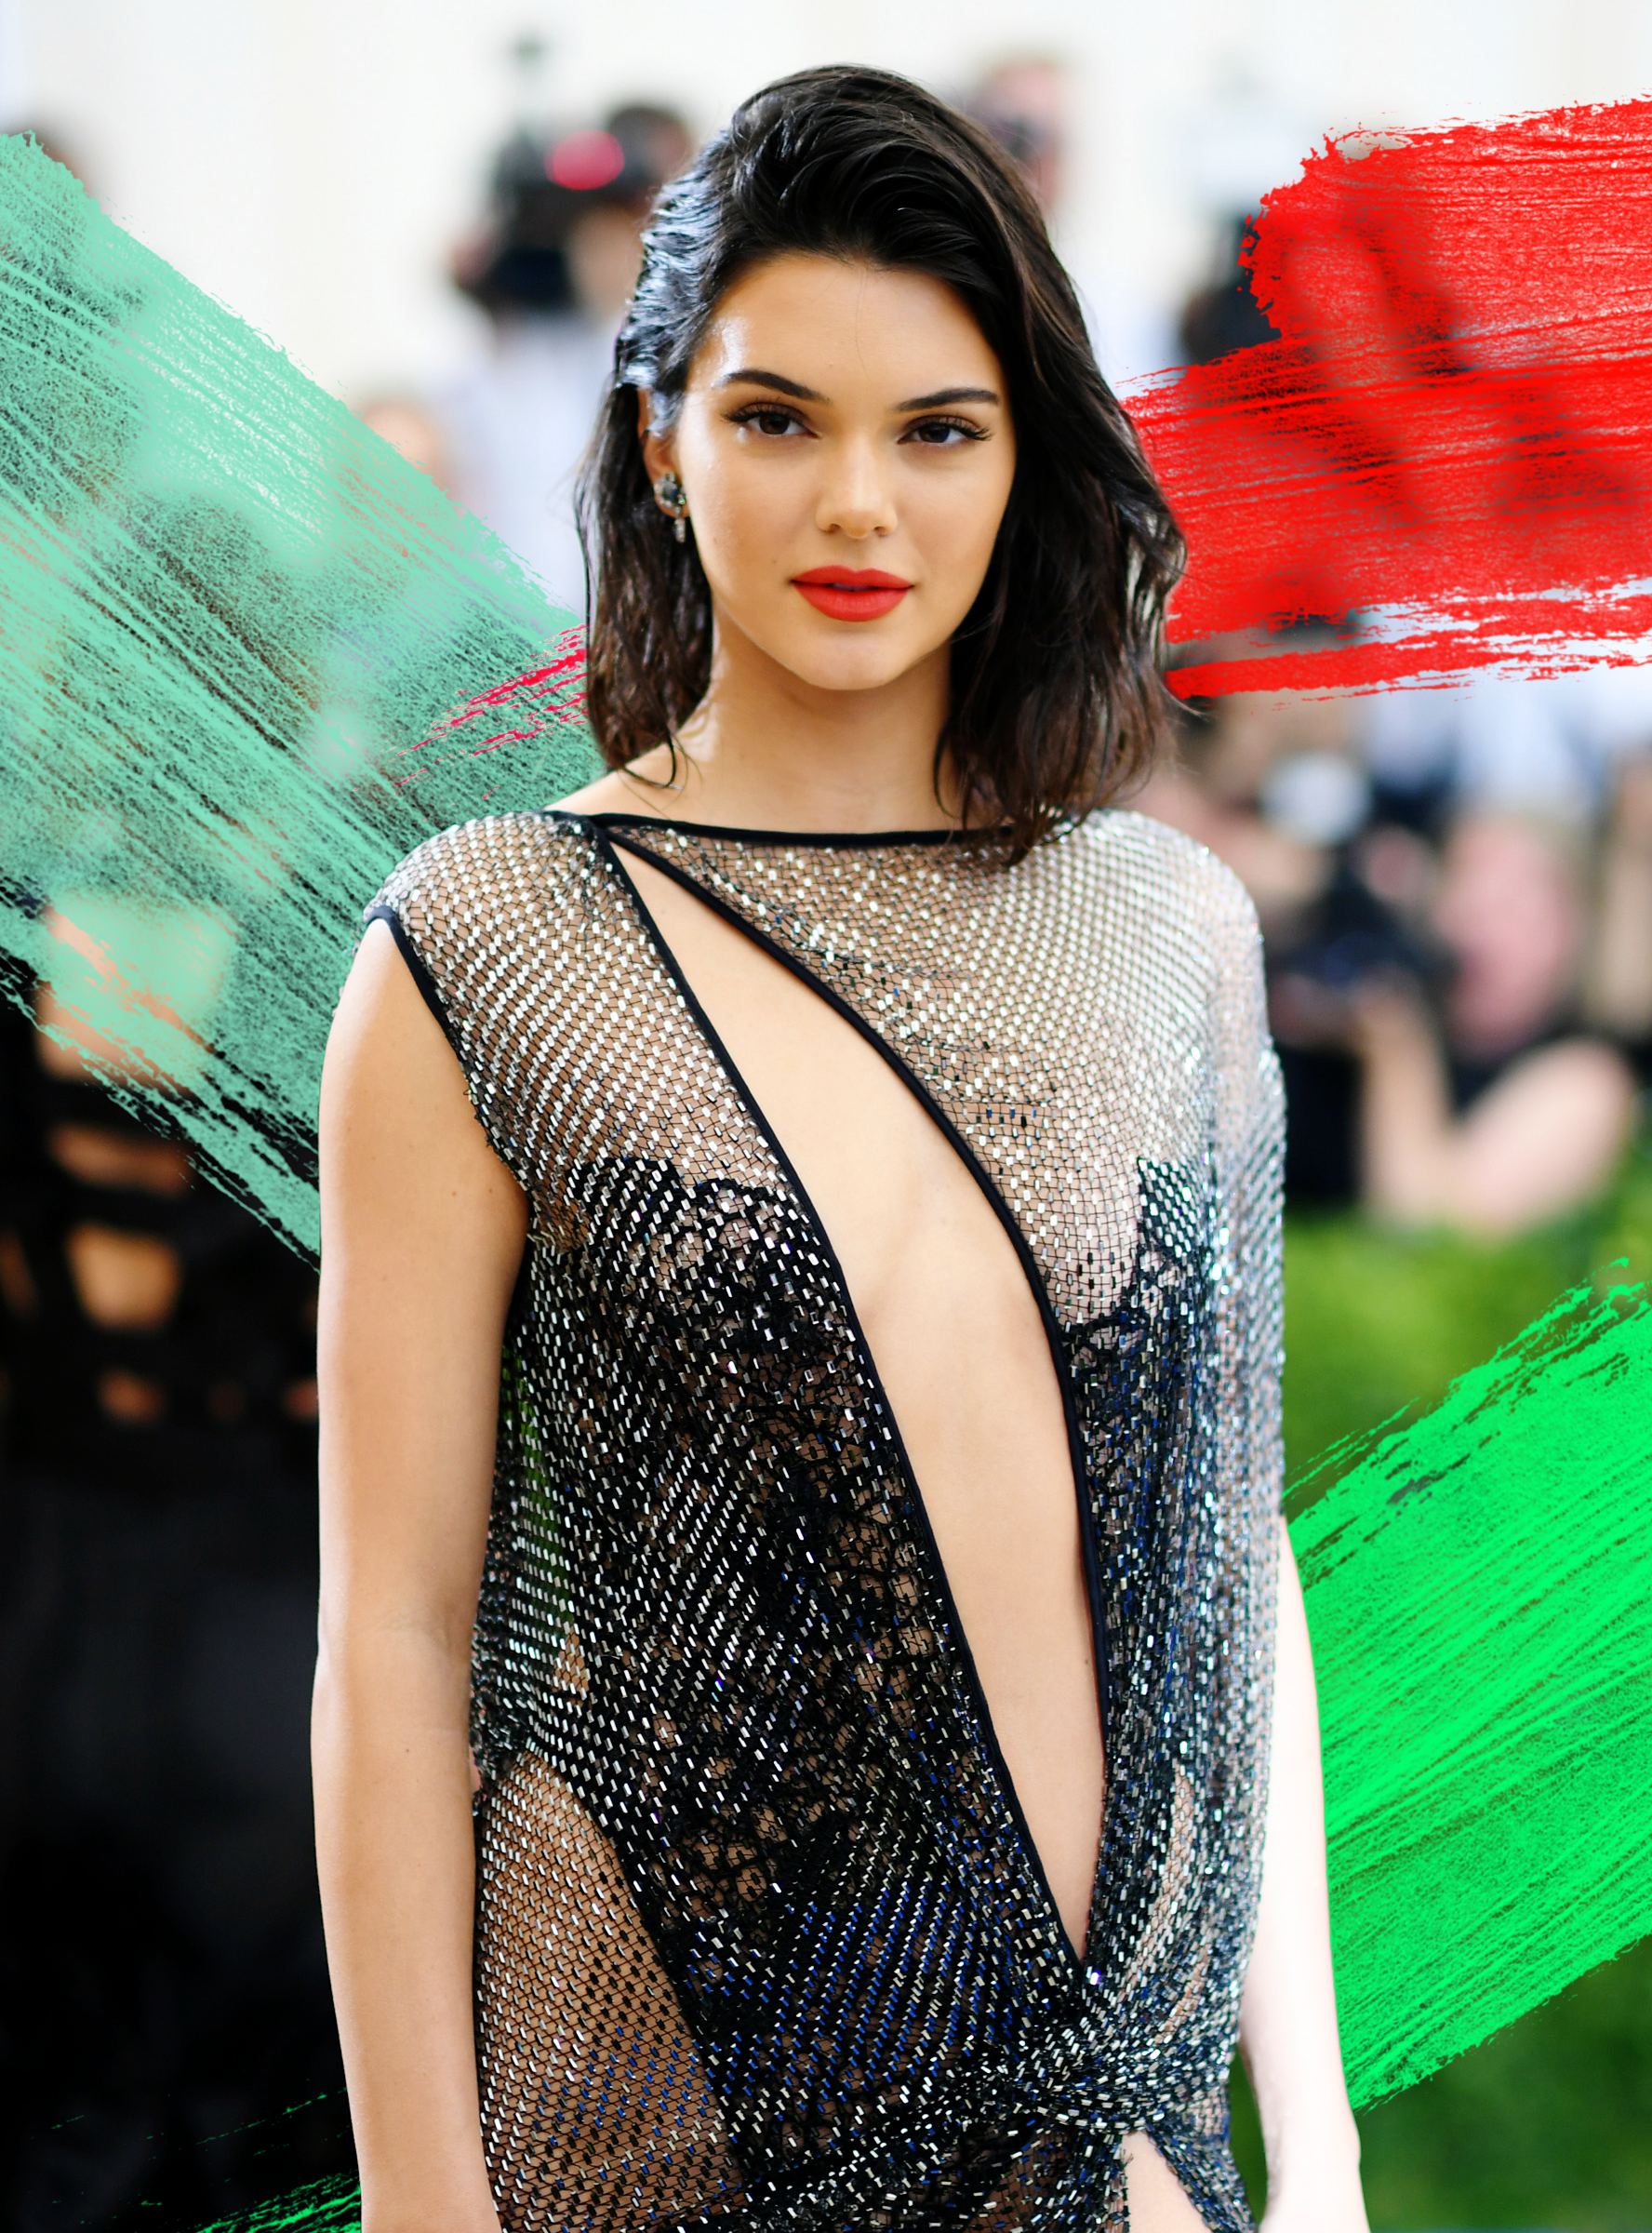 Kendall jenner dating taylor lautner game